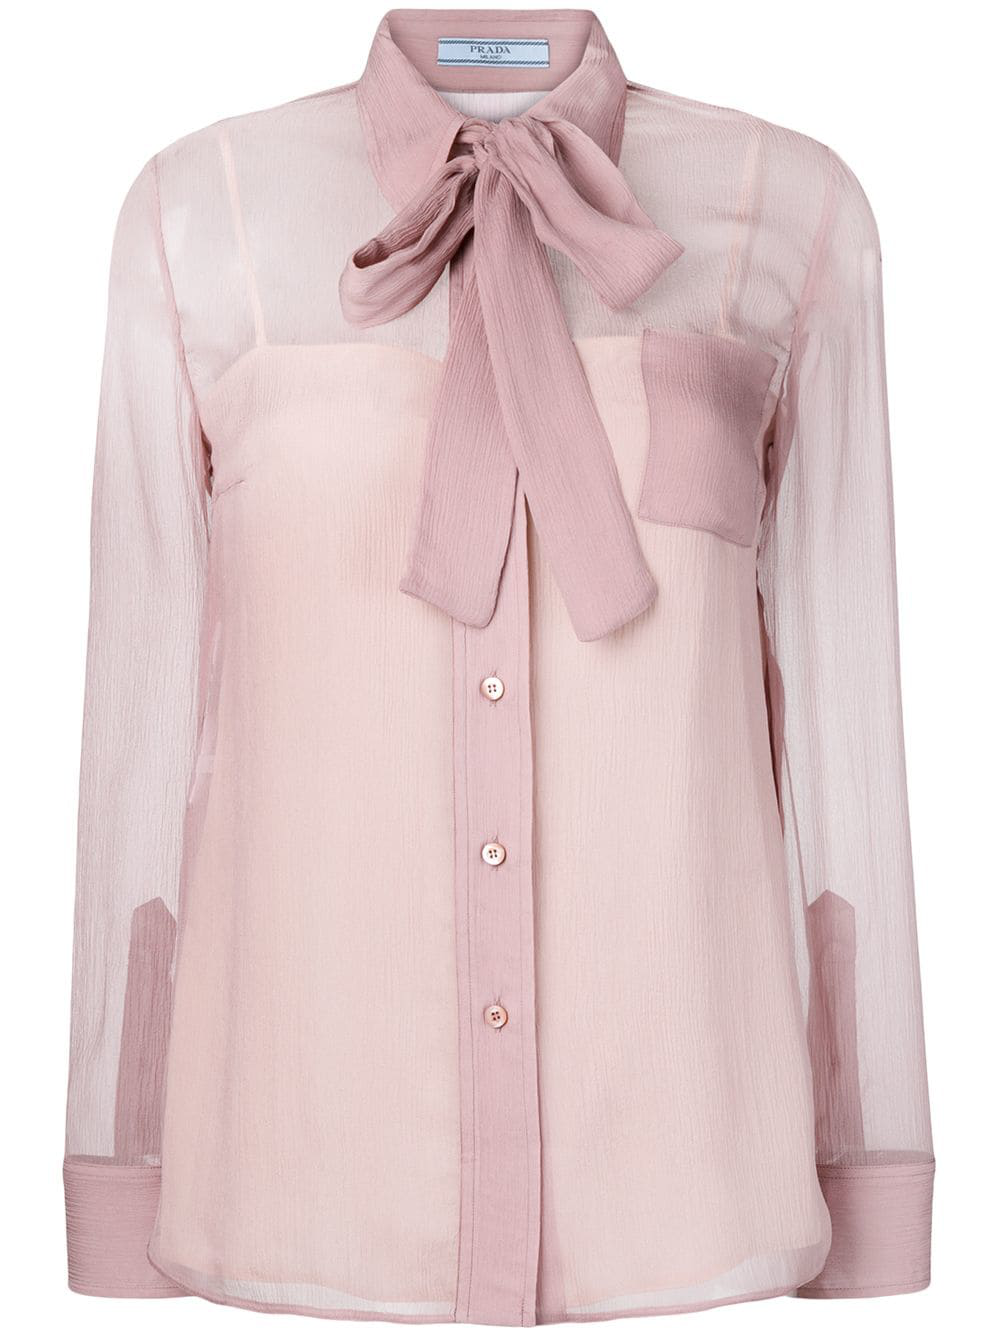 963533c2984b7 Pink silk bow detail shirt from Prada featuring a pointed collar